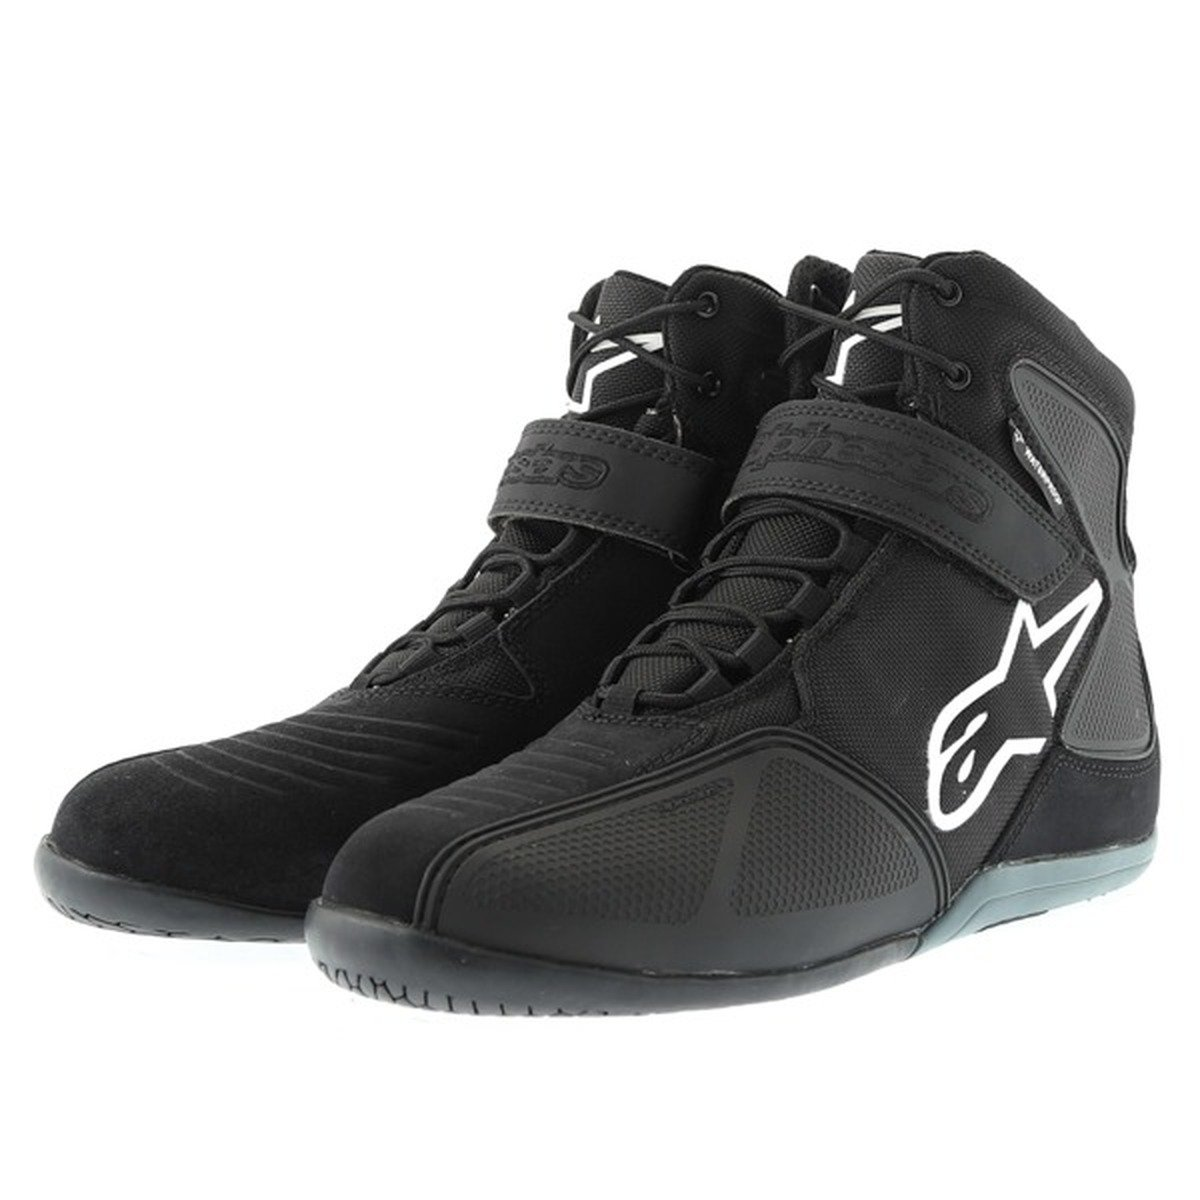 Alpinestars Fastback Waterproof Boots in Black White and Gray